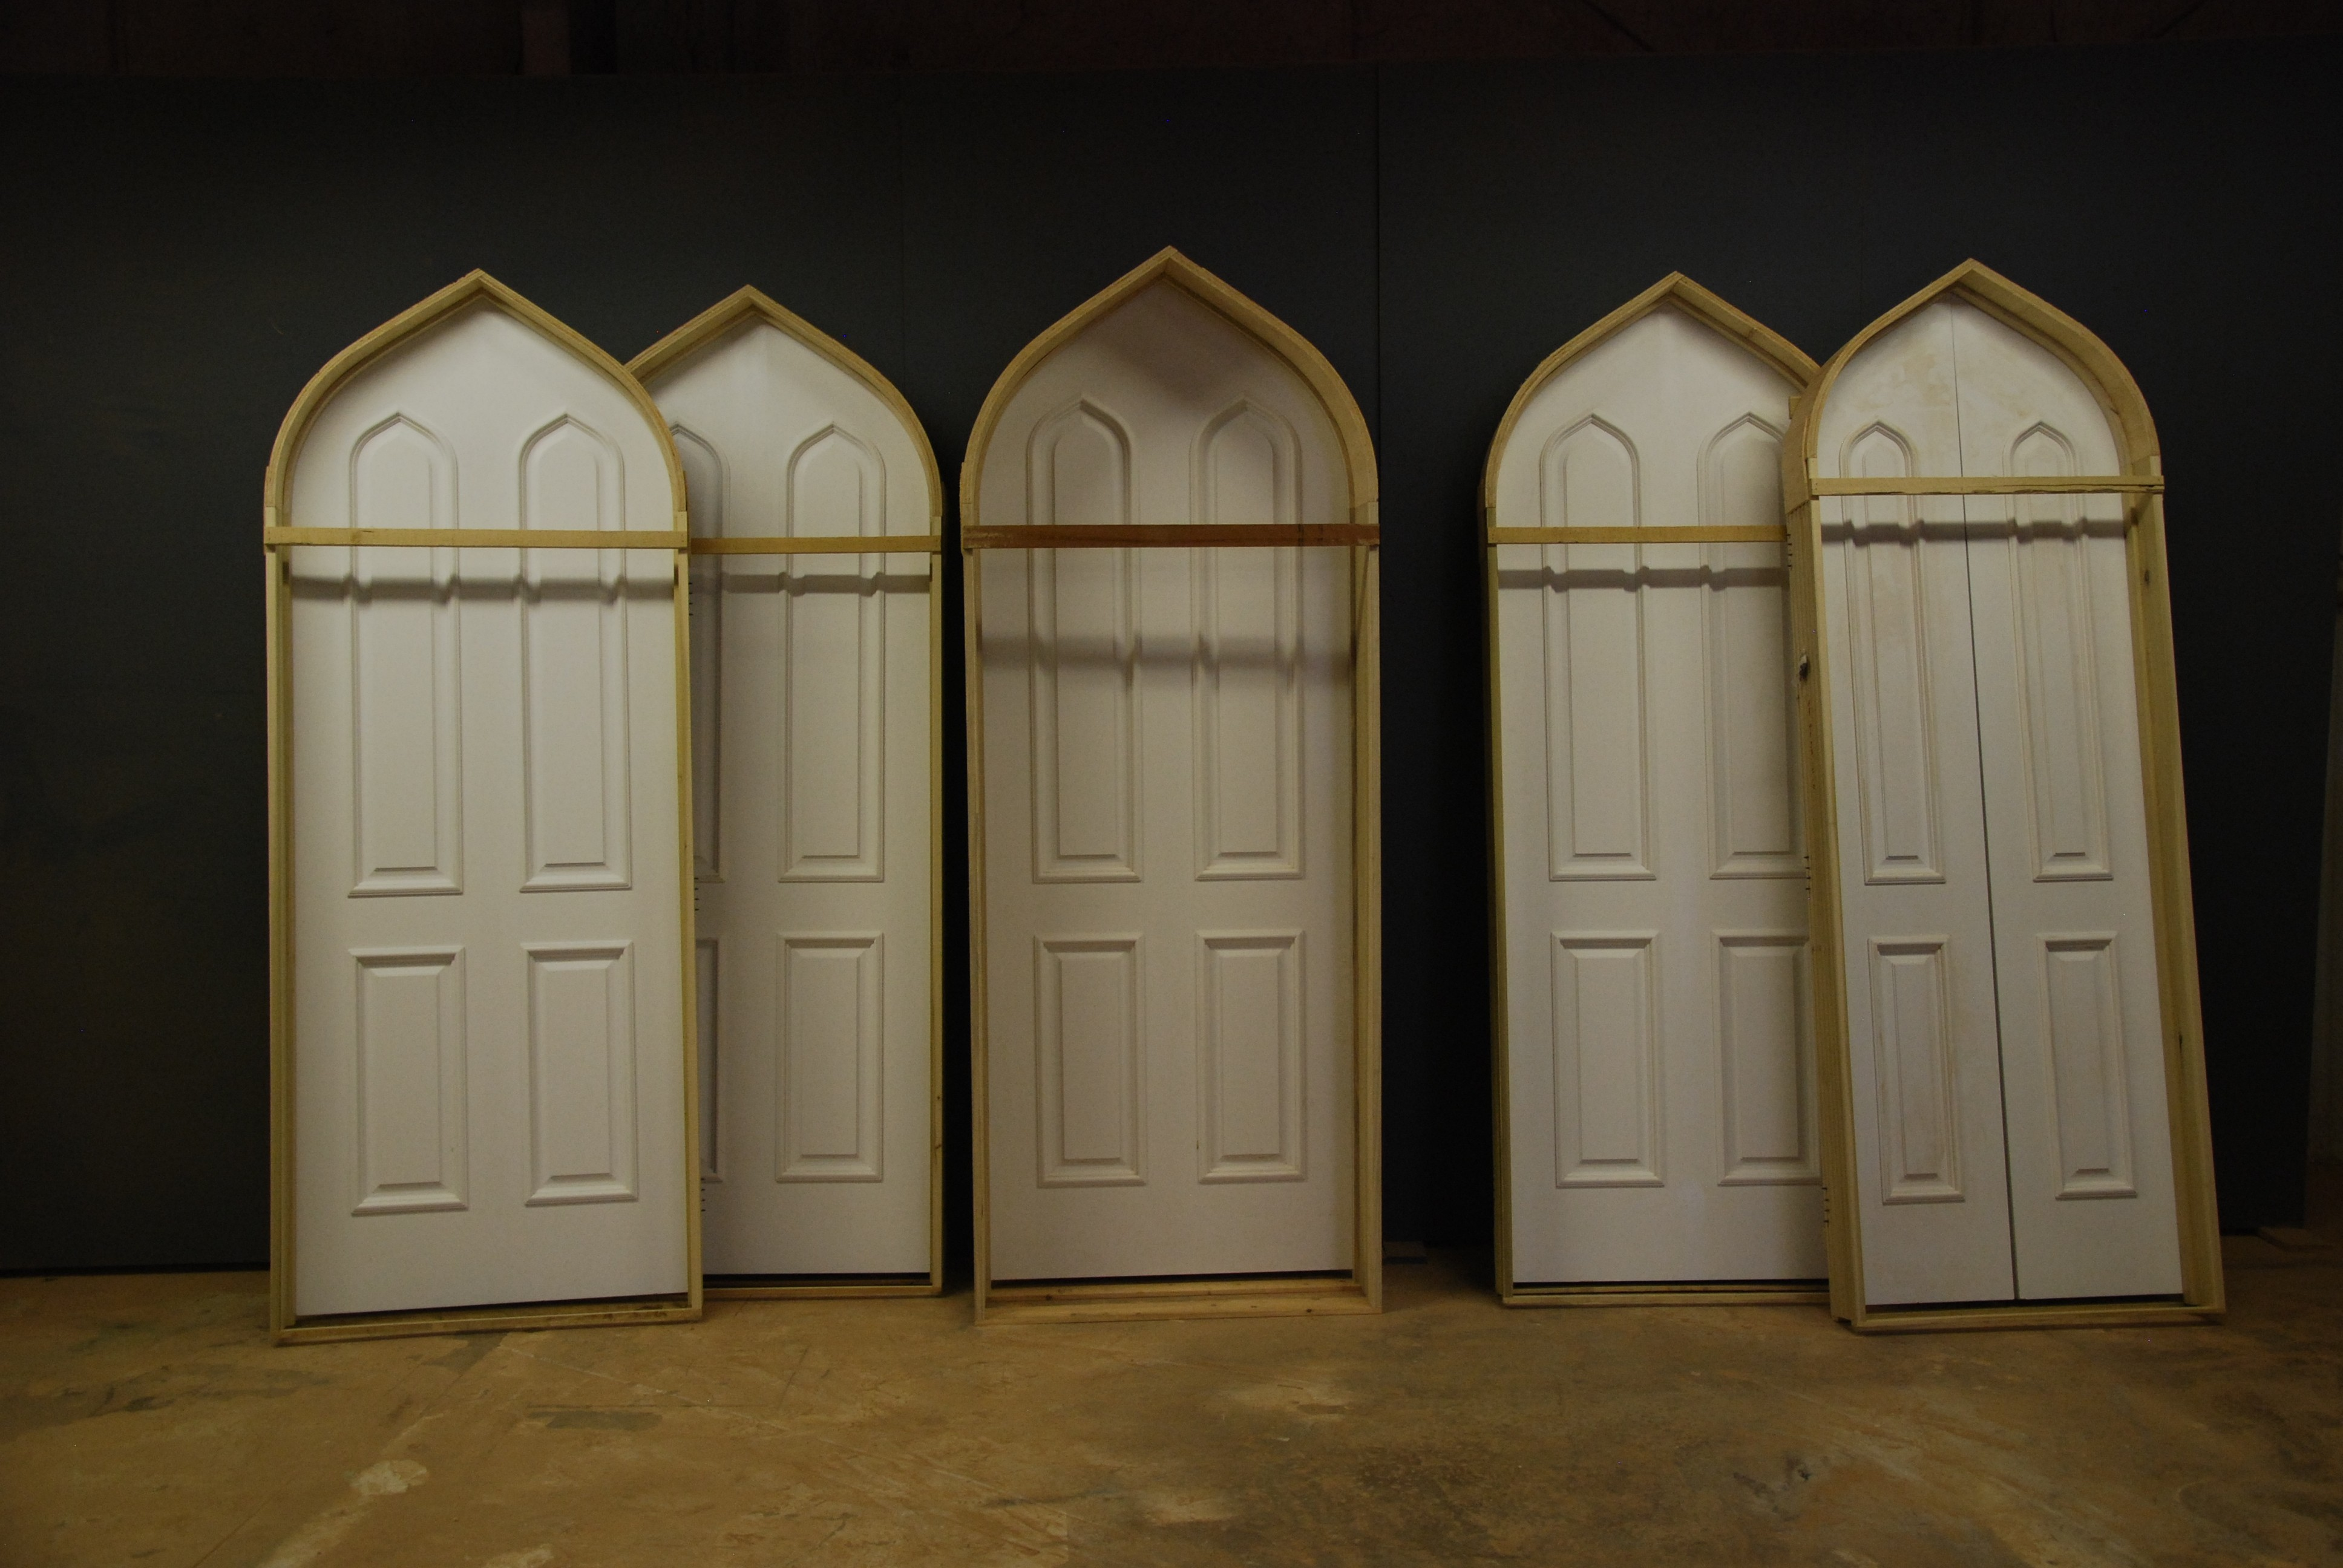 2592 #614B25 Russell Millworks Doors Russell Millworks picture/photo Millwork Doors 48193872